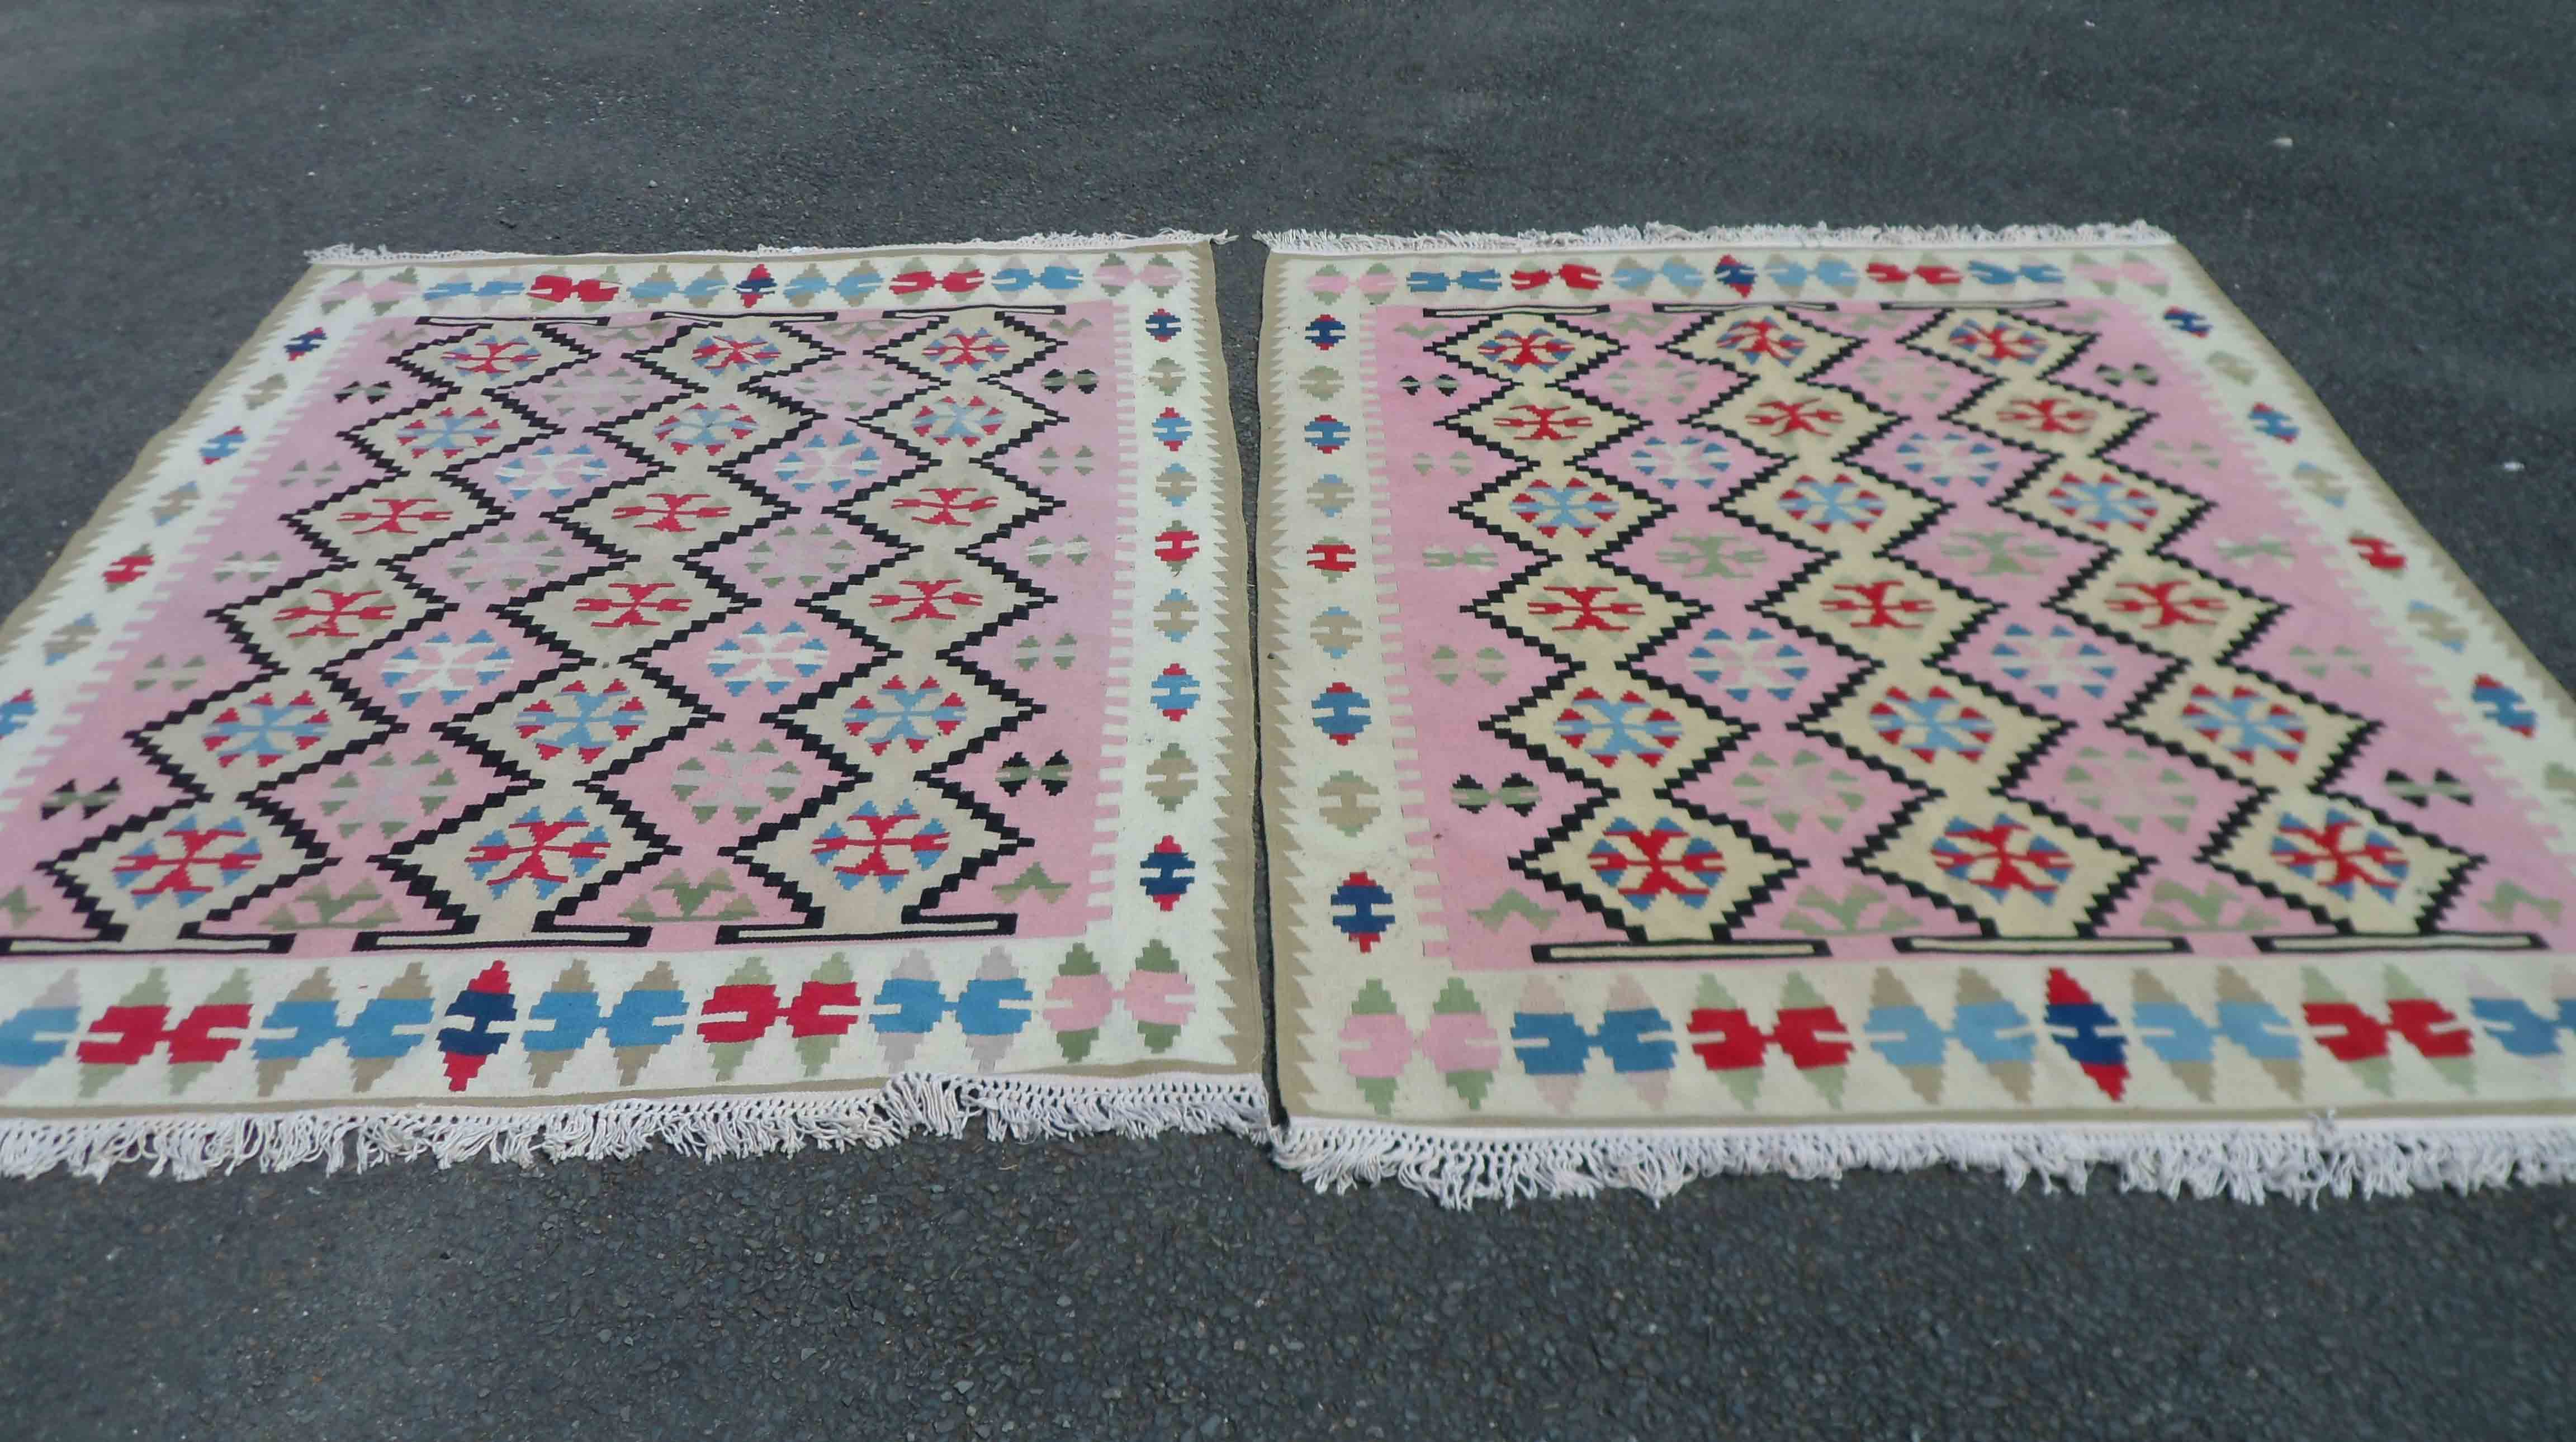 A pair of 20th Century handmade Pakistani kelims with polychrome geometric designs on a pink and